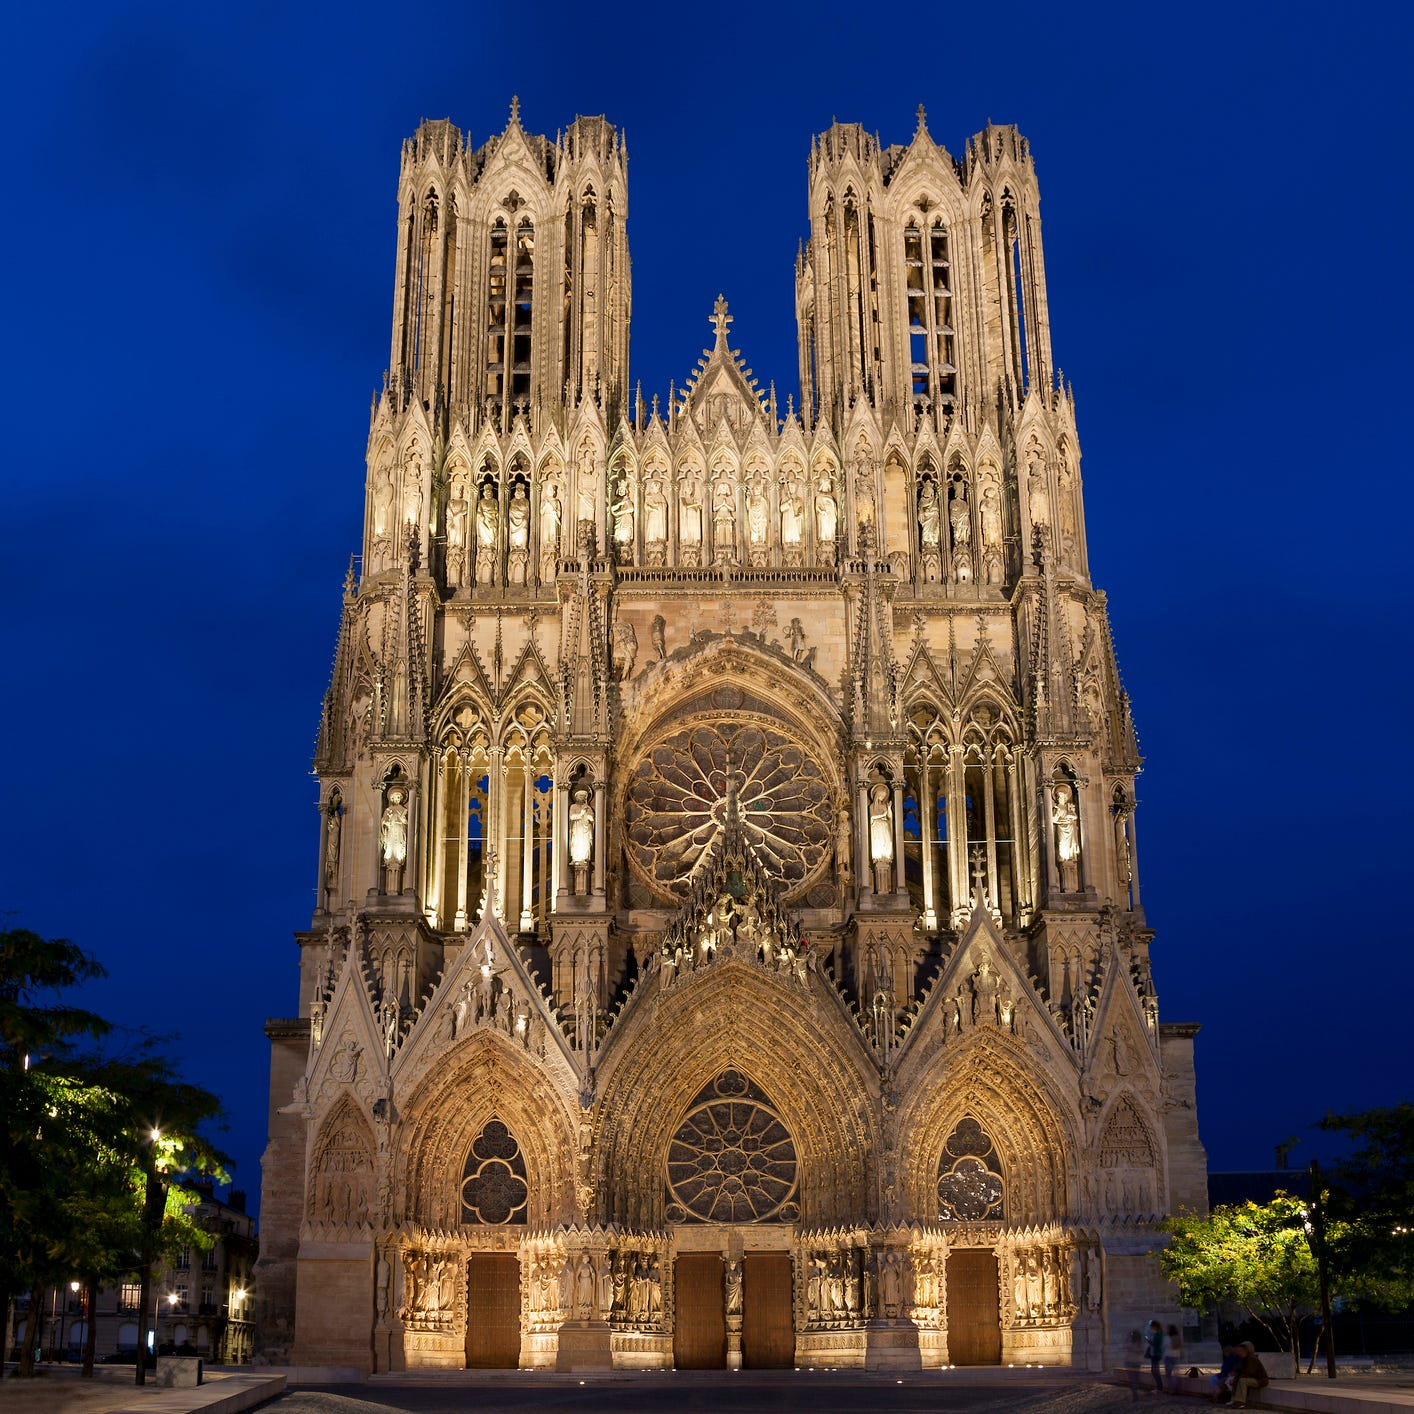 Reims Cathedral in Reims, France: Just north of Paris in the region of Champagne, the Reims Cathedral is about as old as Paris' Notre Dame. Once totally destroyed by fire and rebuilt in 1210, the cathedral suffered even more damage during an English siege a century later, and caught fire again in the year 1481. This most recent fire destroyed the framework, bell tower and roof, but the cathedral was hastily rebuilt. During World War I, the cathedral suffered again when a German attack took out the windows, damaged the facade and set fire to scaffolding. But in about a decade it was rebuilt again, and has been standing tall ever since.